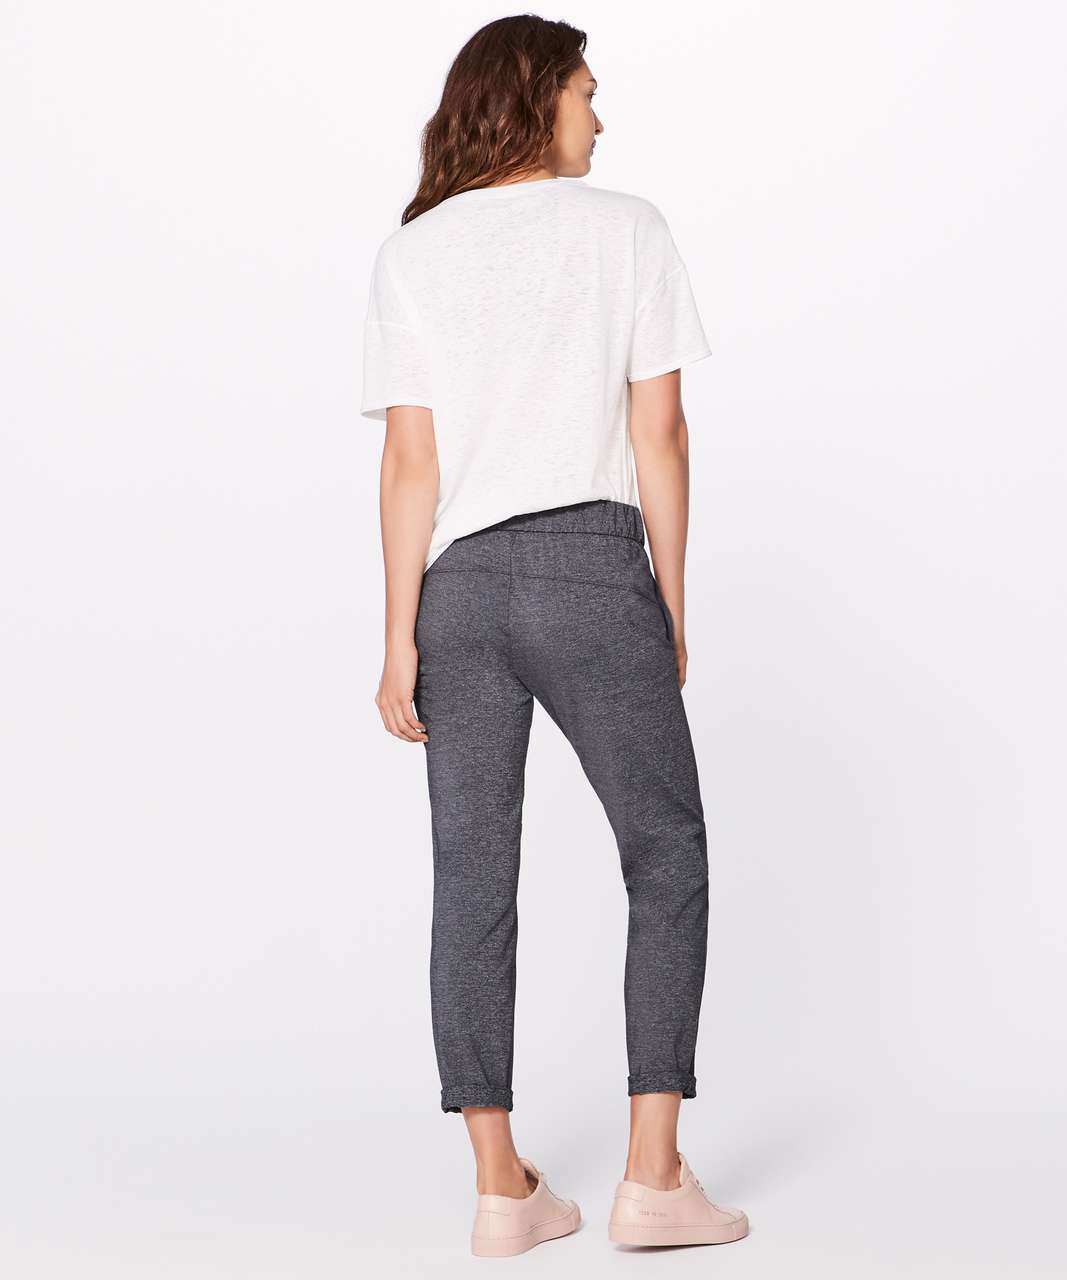 "Lululemon On The Fly Pant *28"" - Heathered Black"